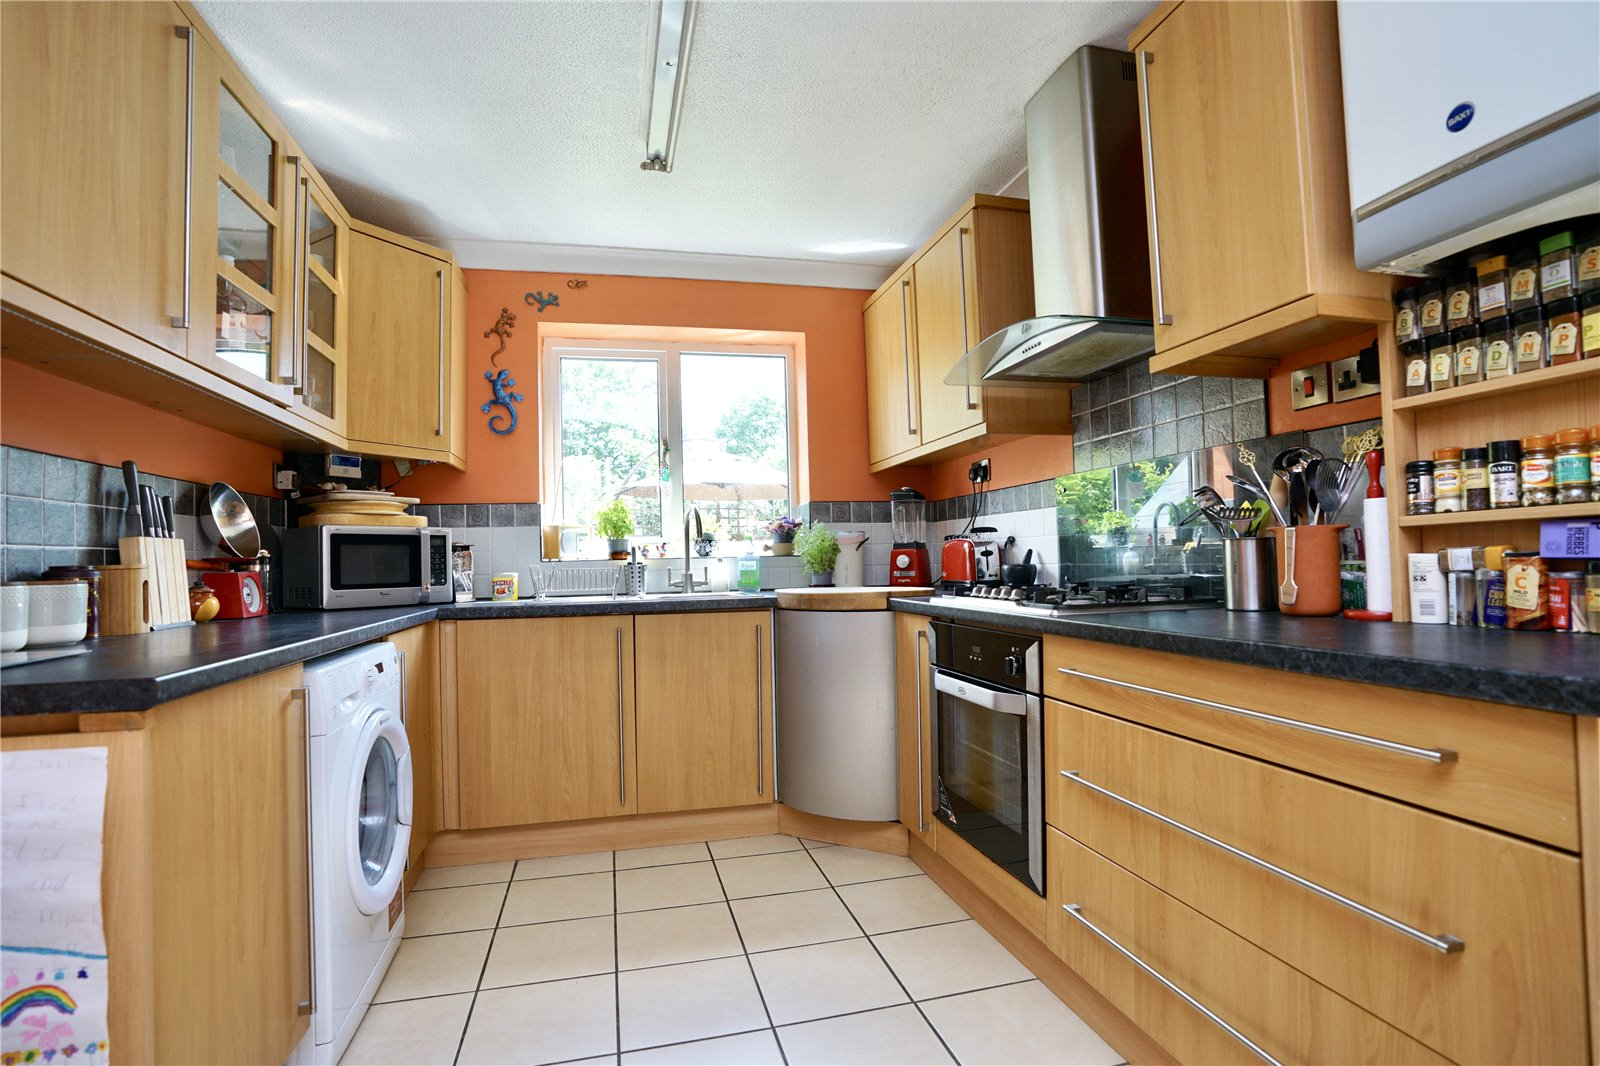 4 bed house for sale in Eaton Socon  - Property Image 5